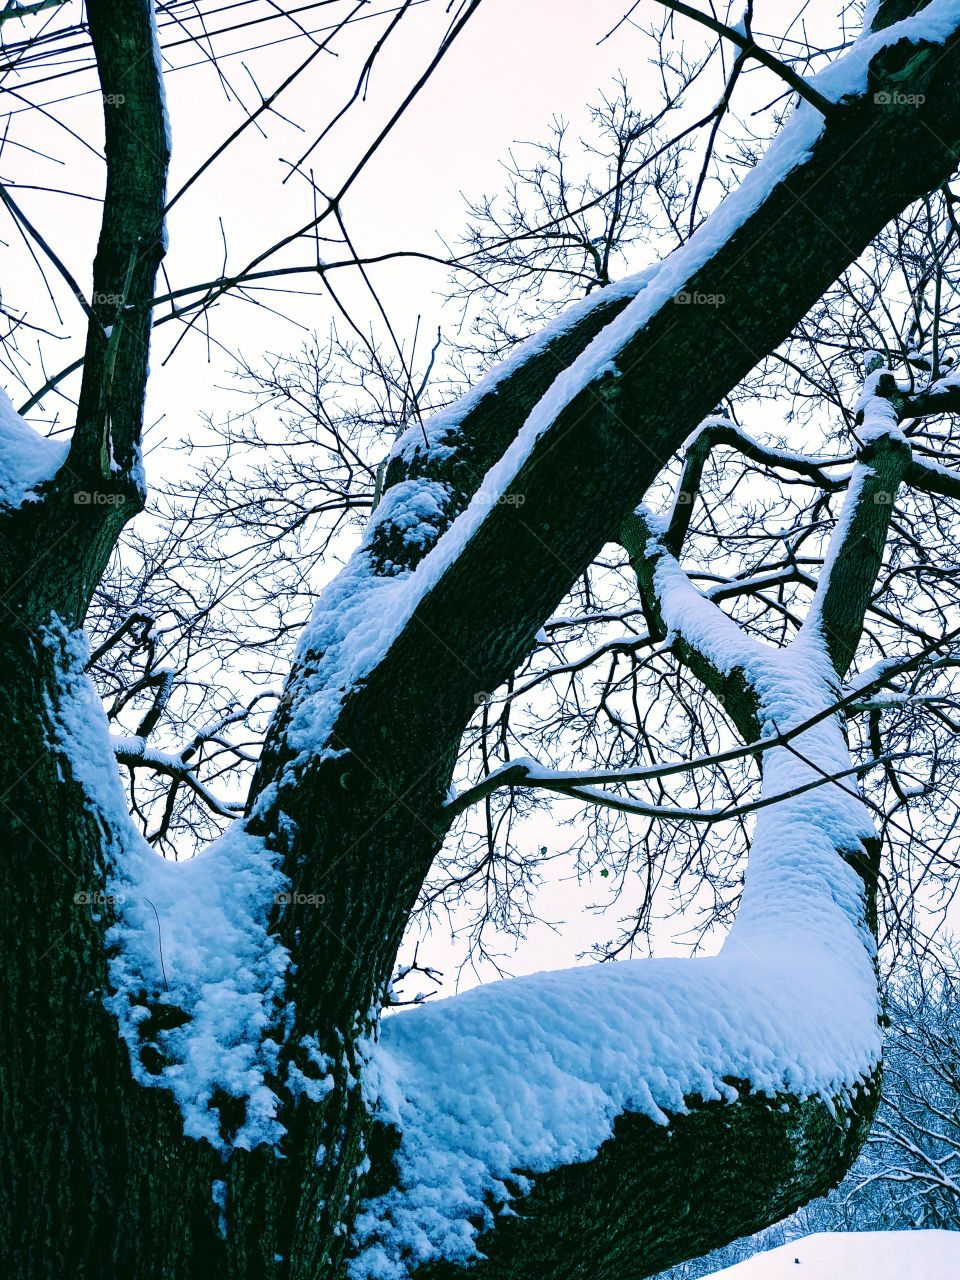 Snow On Branches.